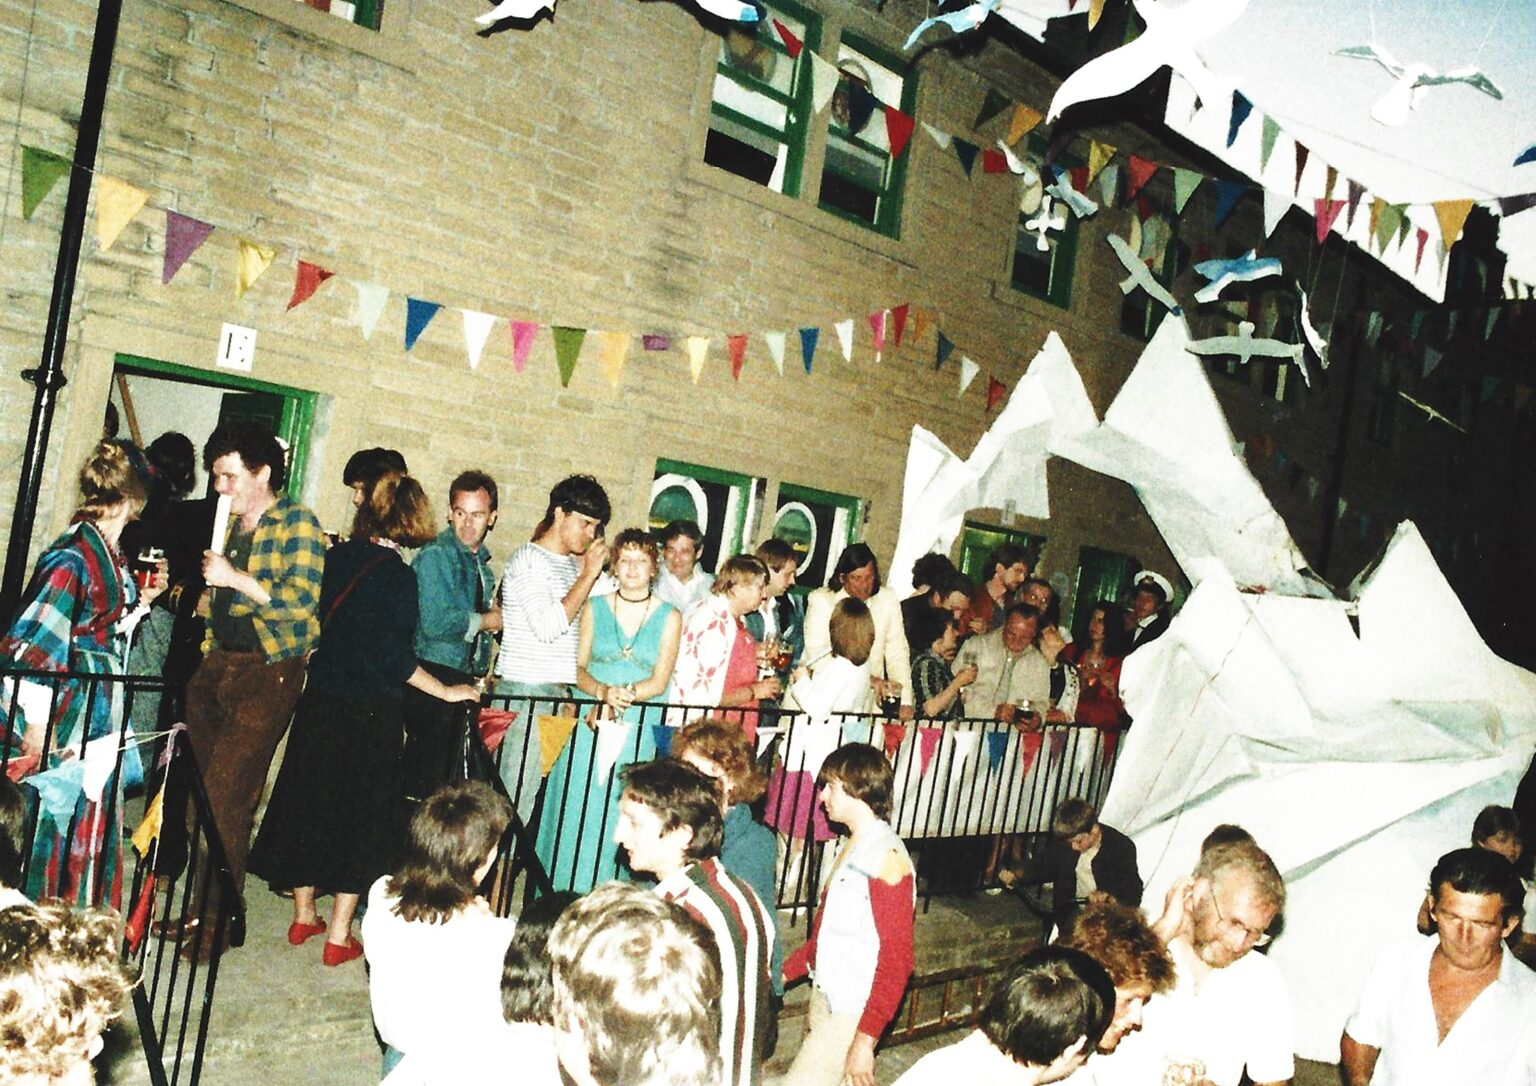 Archive image of arts activity at South Square, Bradford